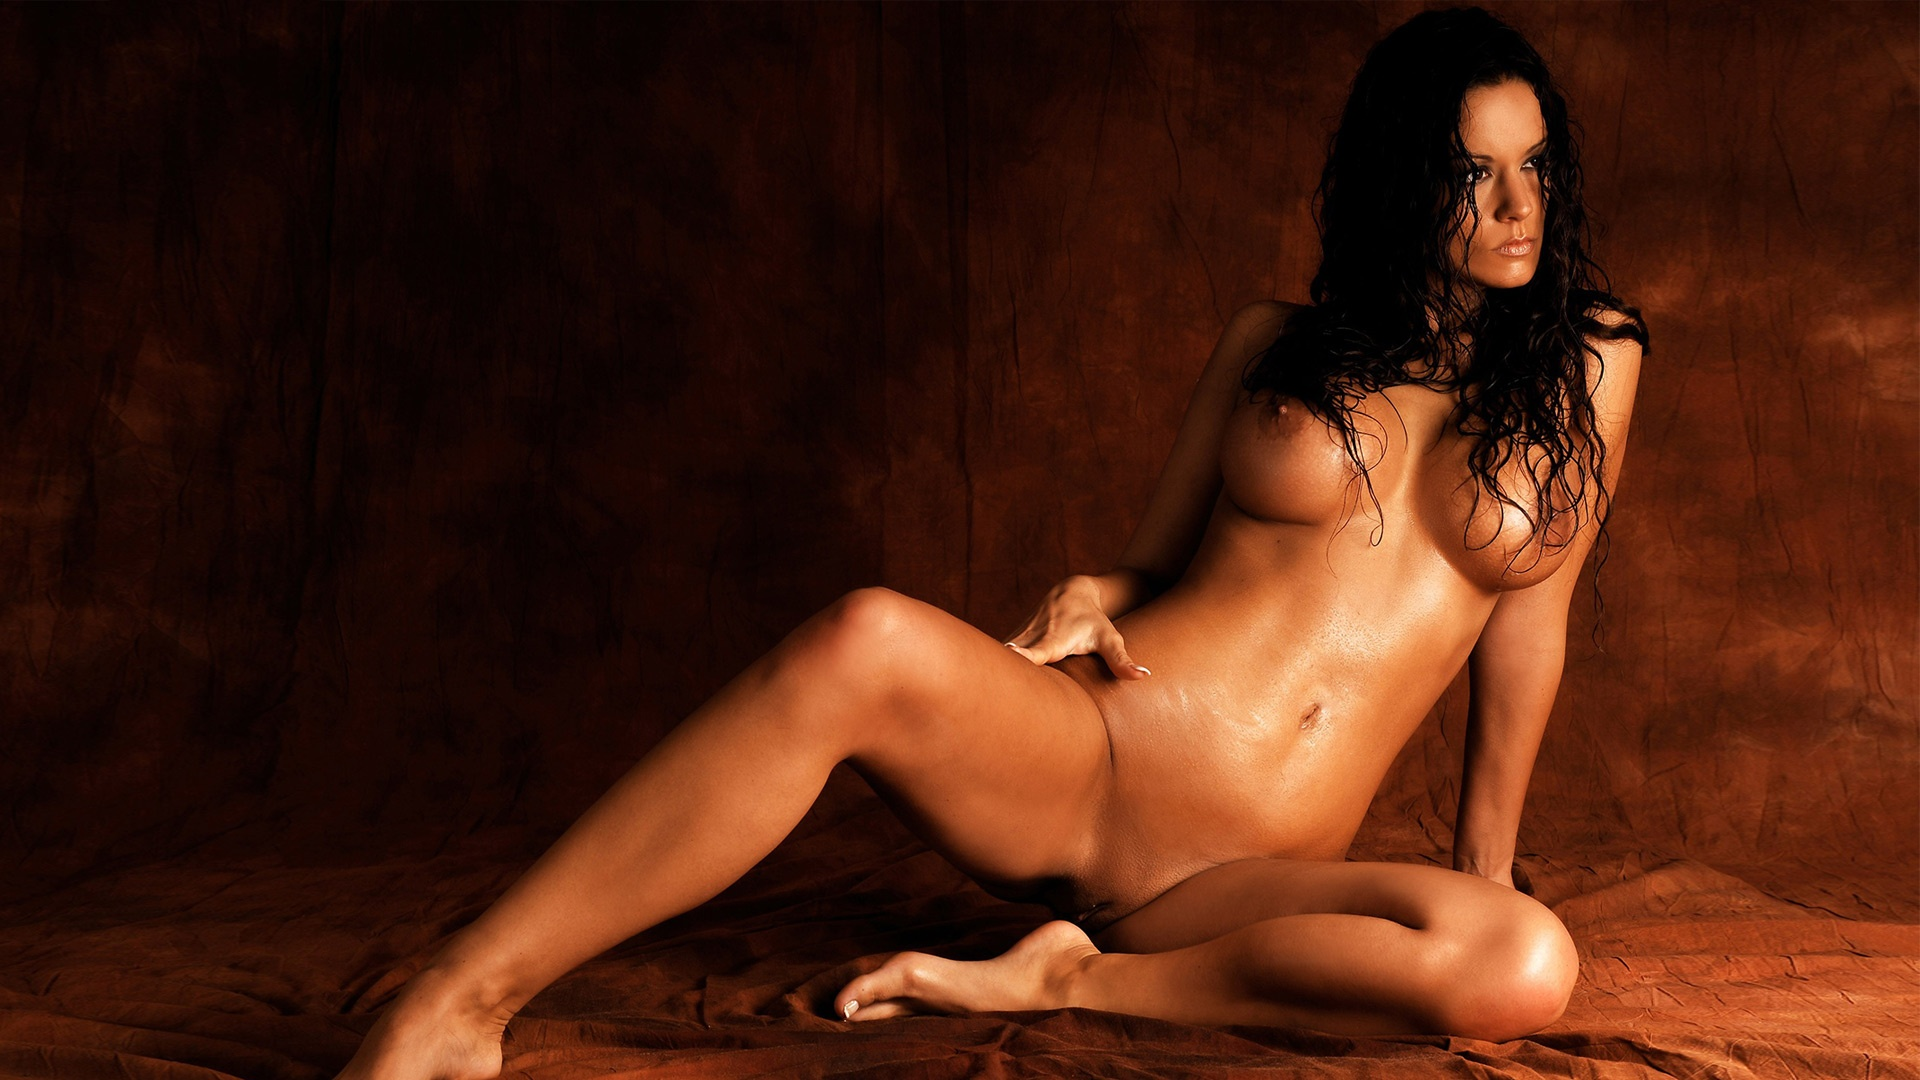 Vivian Brown hot wet nude model erotic pose sexy brunette ...: http://zoomgirls.net/view-vivian-brown-1920x1080.html